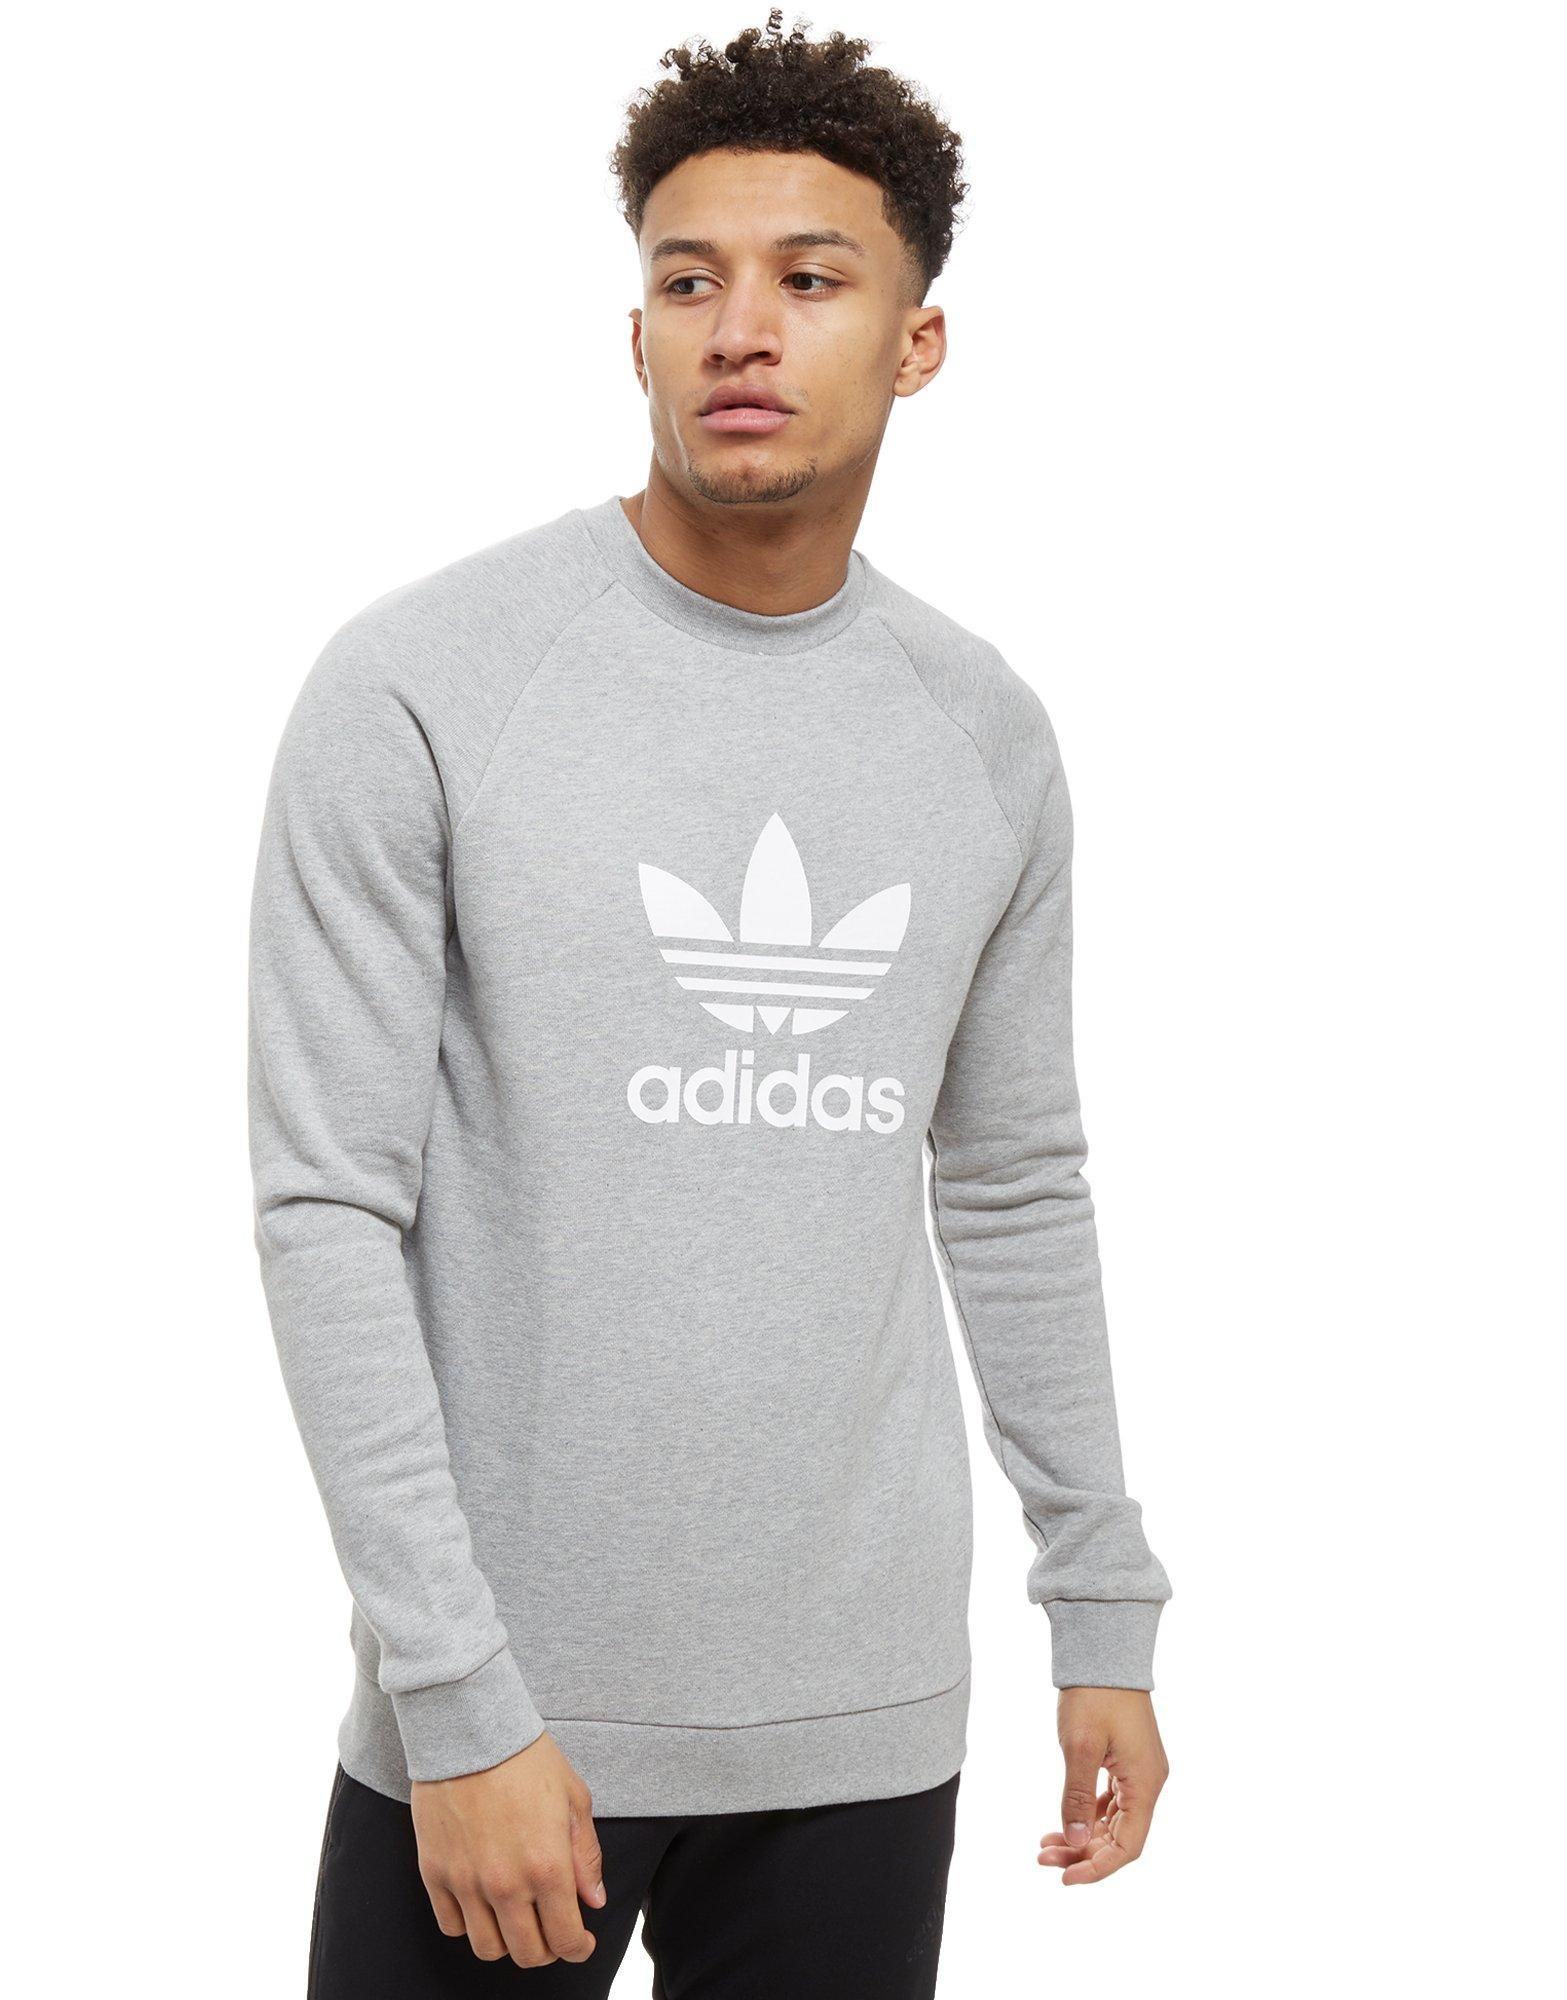 adidas Originals. Men's Gray Trefoil Crew Sweatshirt